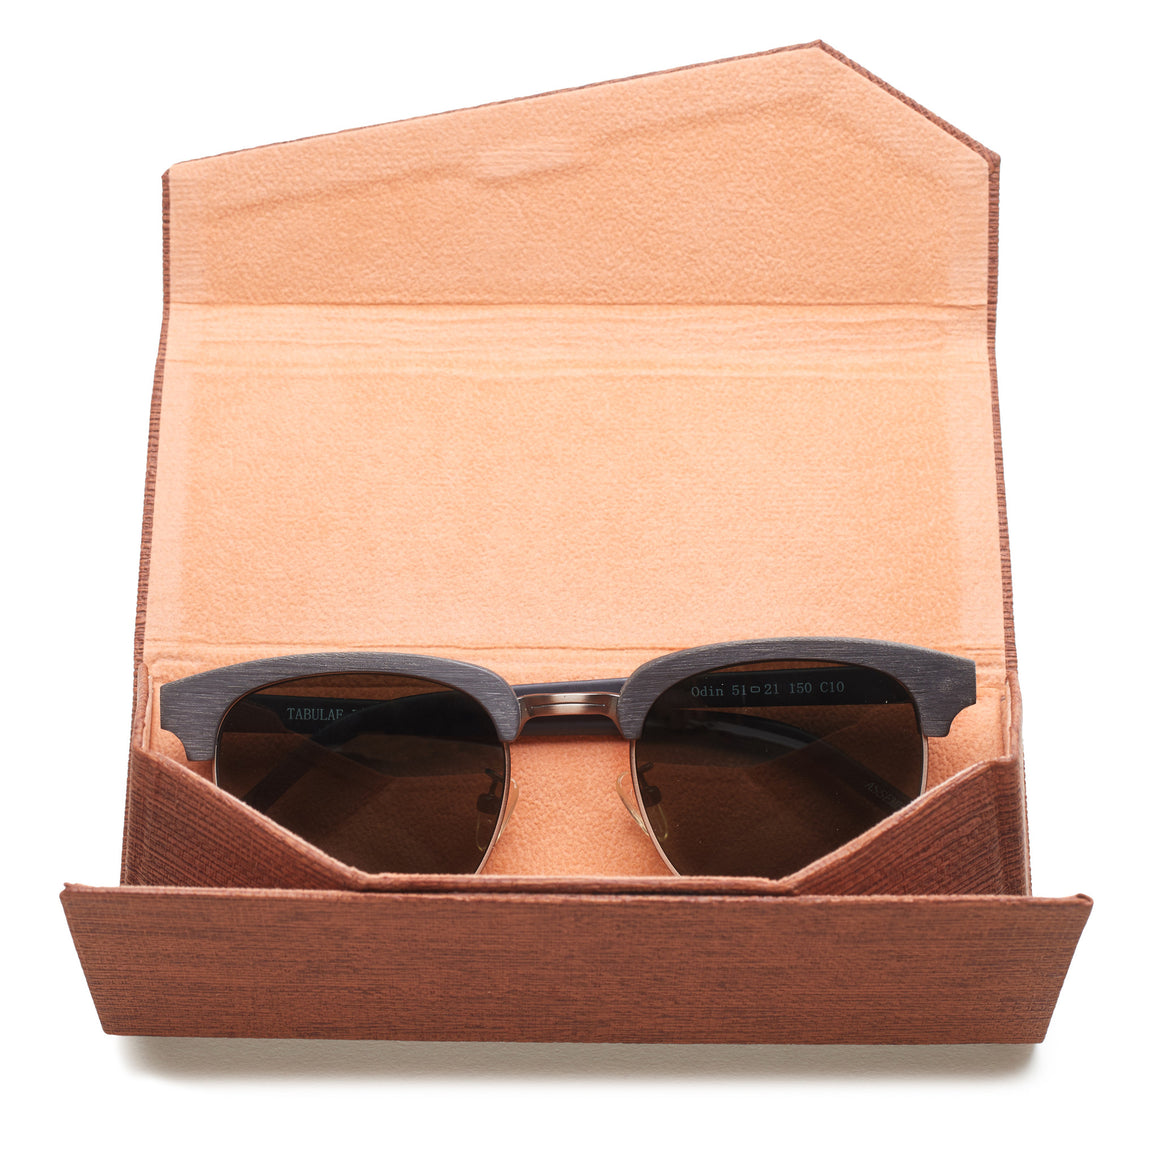 brown folding sunglasses case front